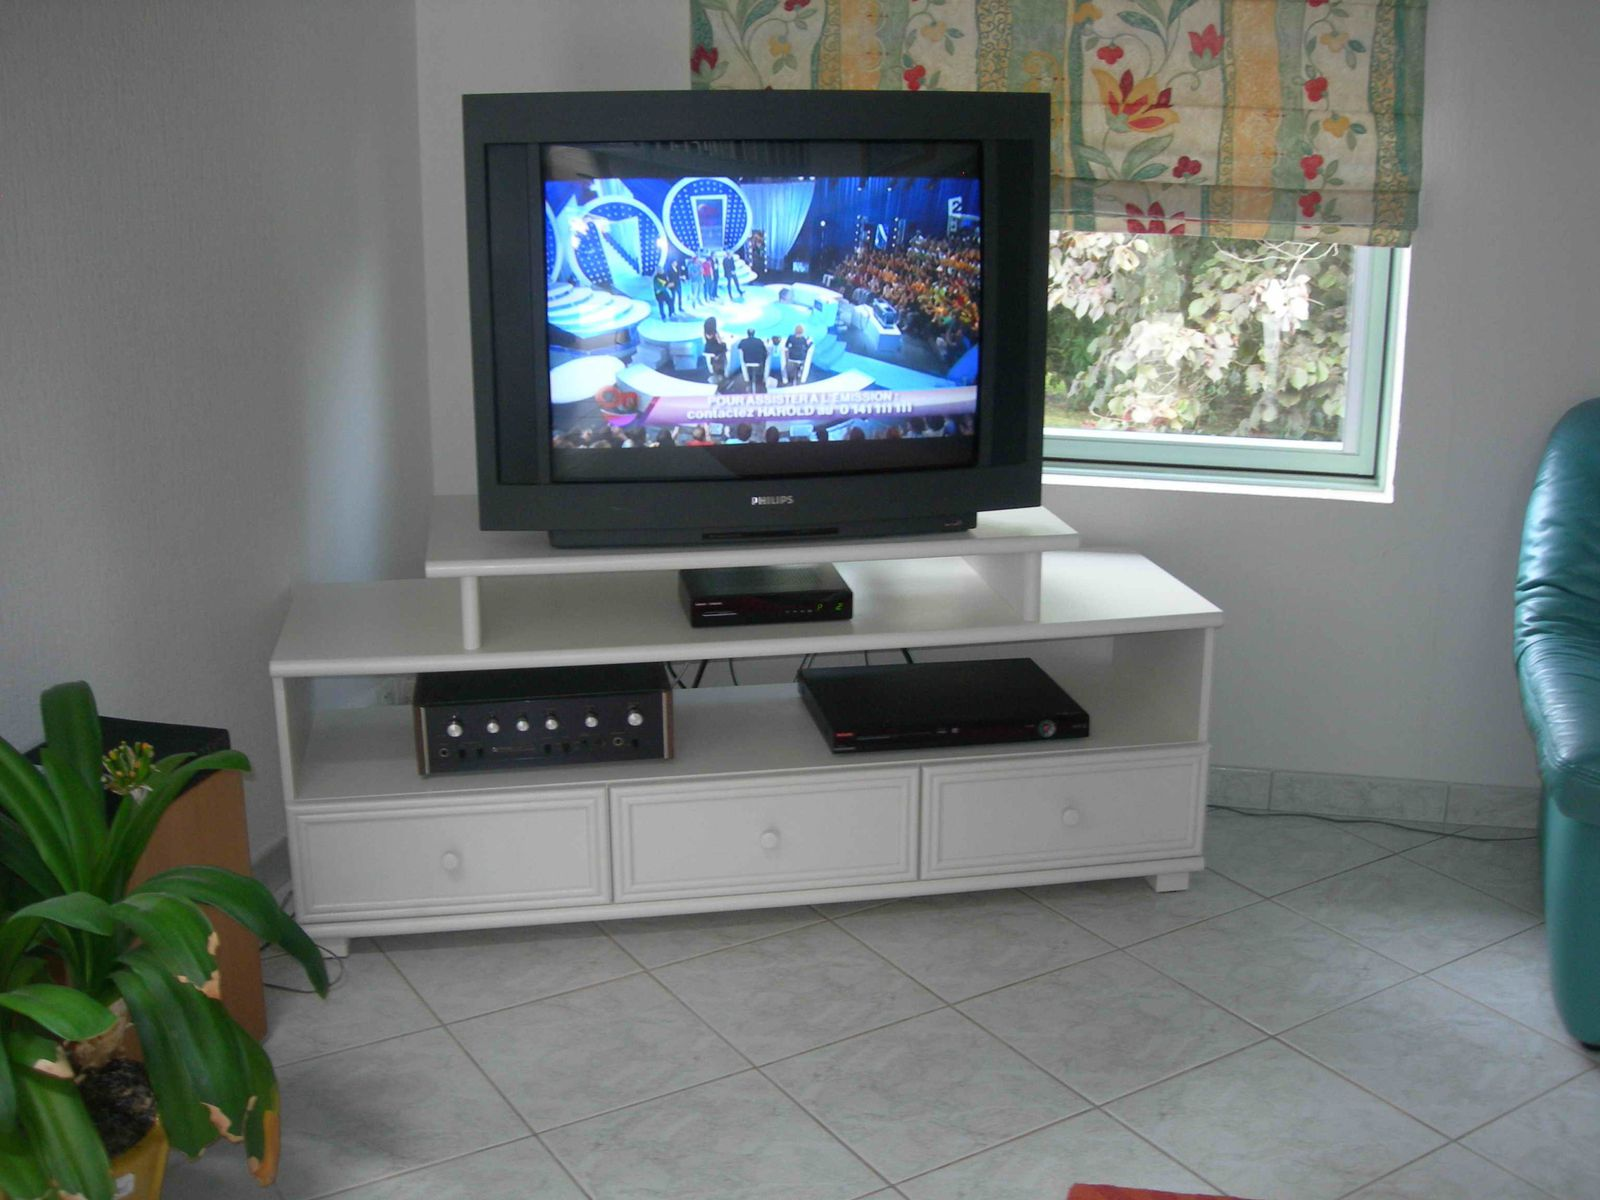 Image post meuble tv design verre image post meuble tv fly nimes image - Meuble Tv Meuble Tv Magasin Fly